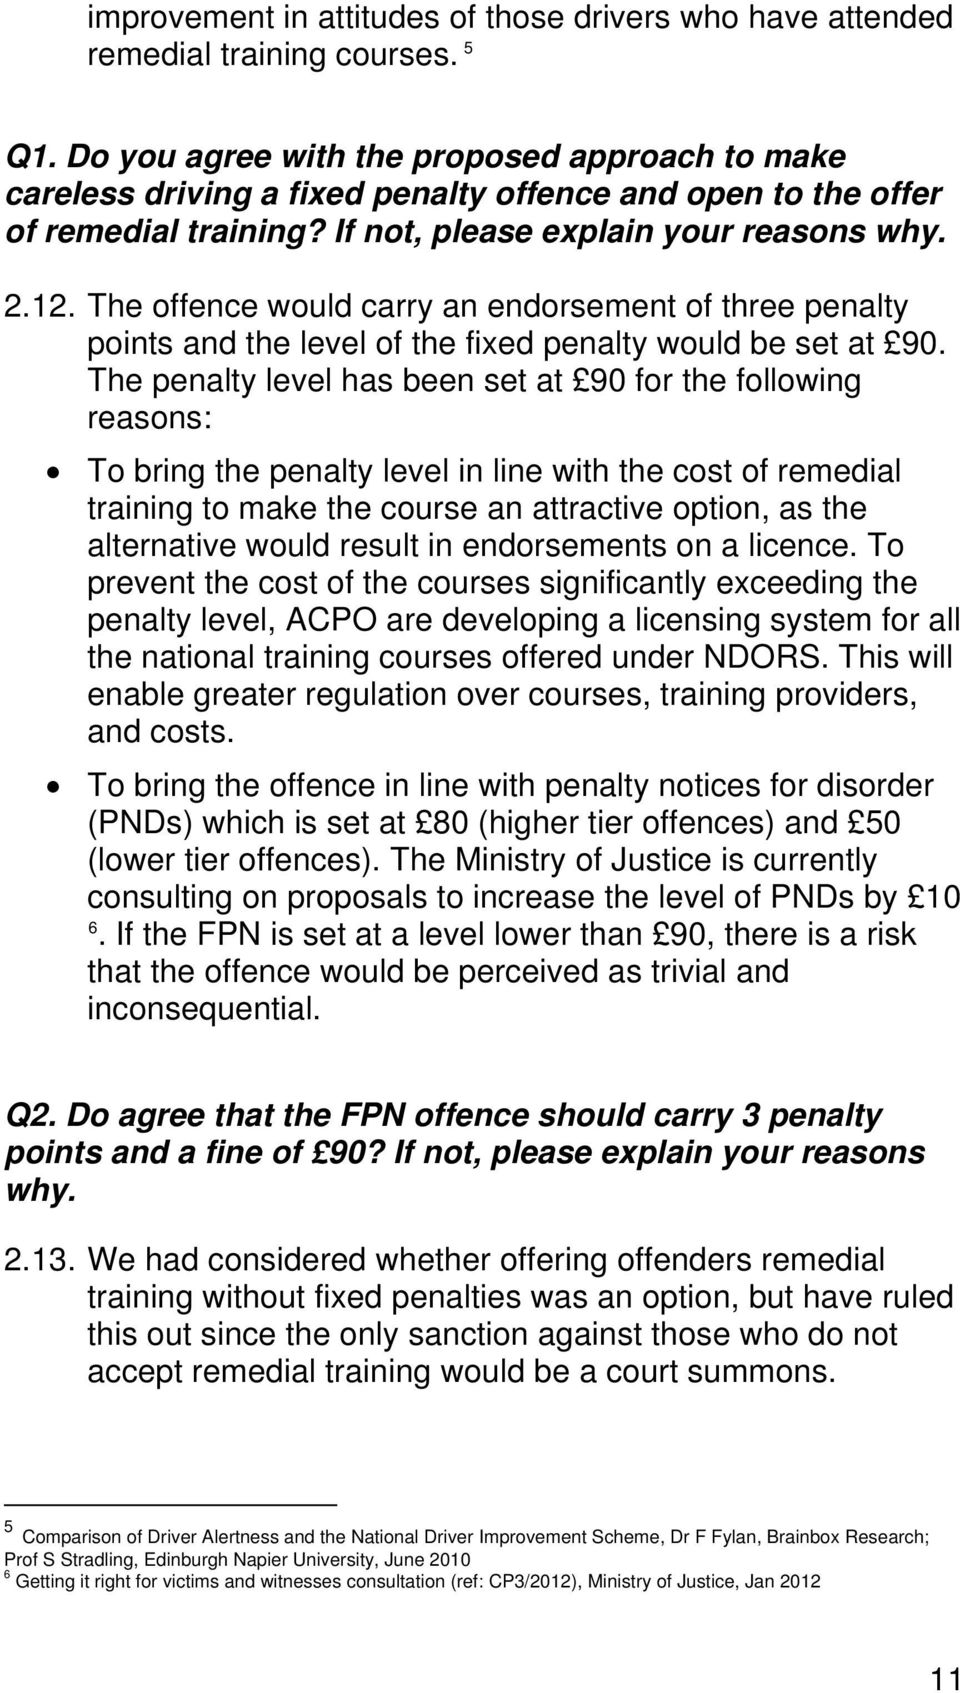 The offence would carry an endorsement of three penalty points and the level of the fixed penalty would be set at 90.